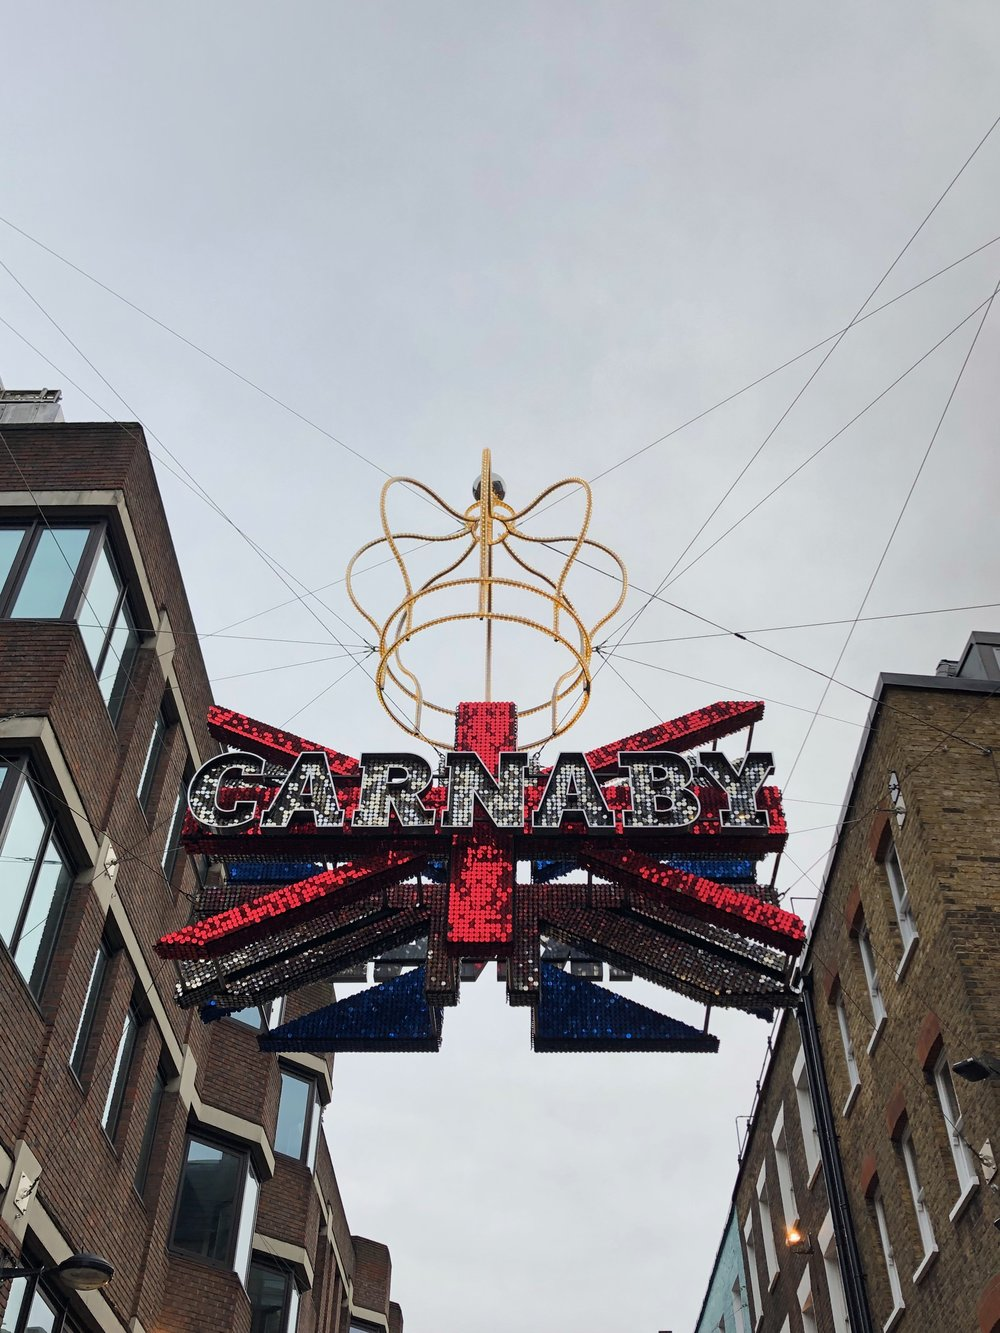 Carnaby Street had such fun Christmas decorations